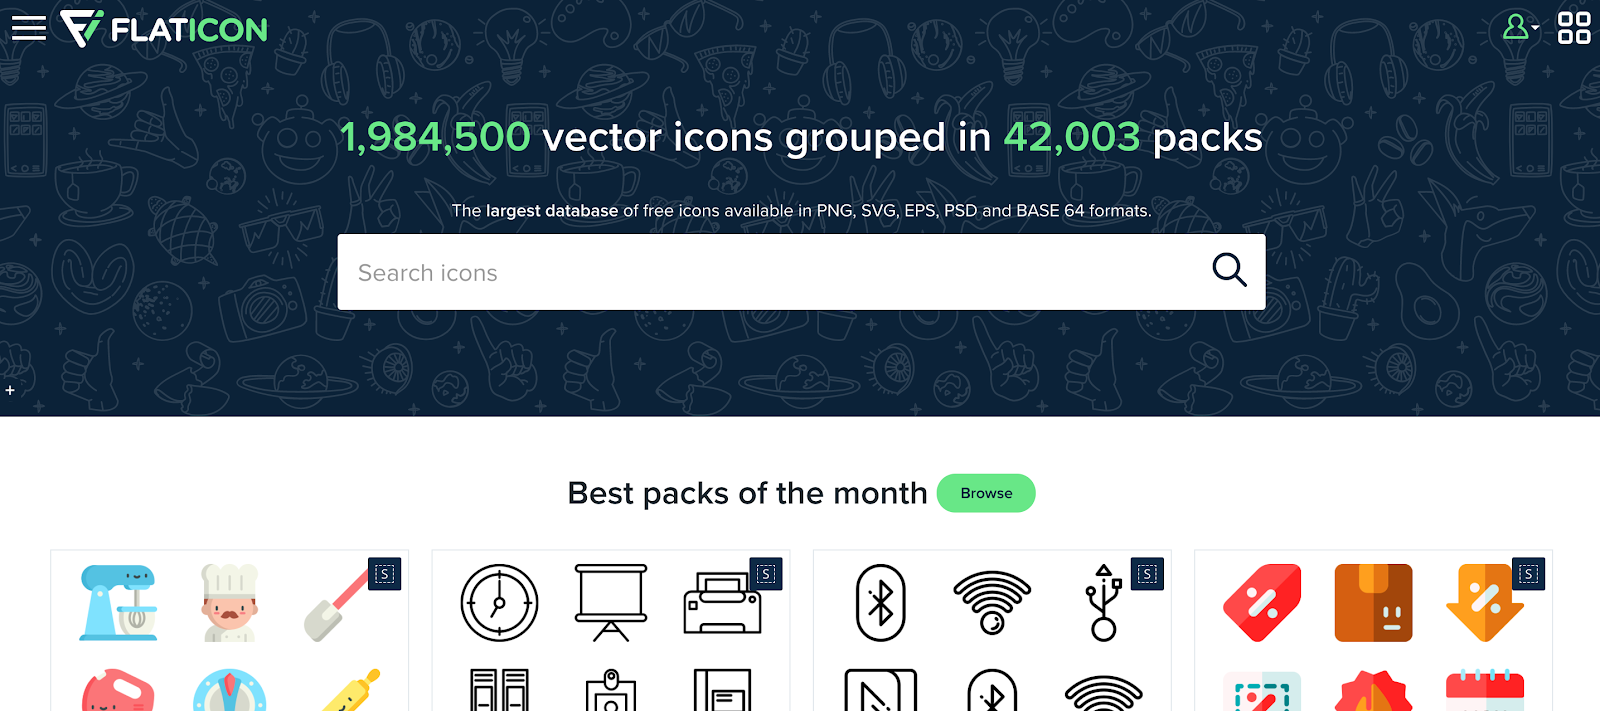 Flaticon is a huge online repository of icons created by the founders of Freepik